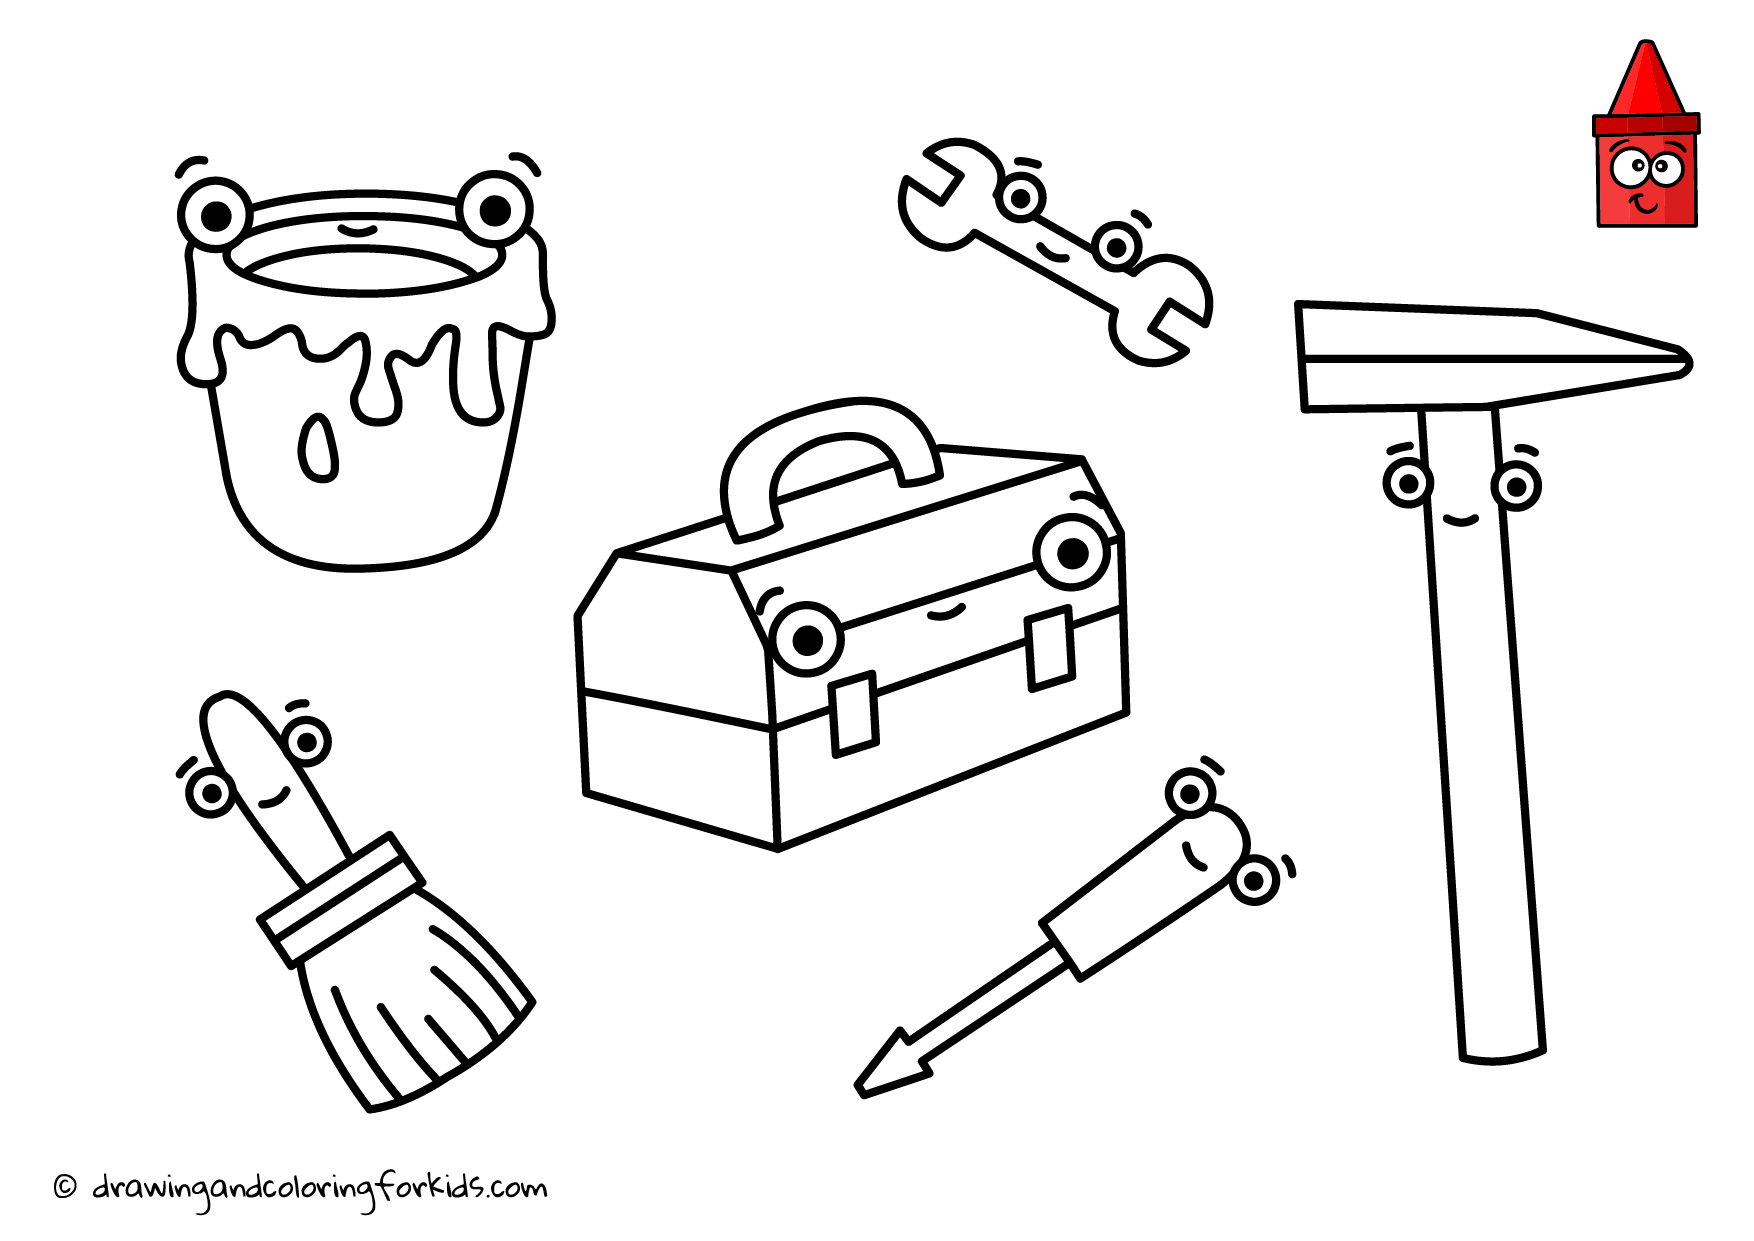 Drawing Tools For Kids| Coloring Page Tools | How to Draw Tools ...